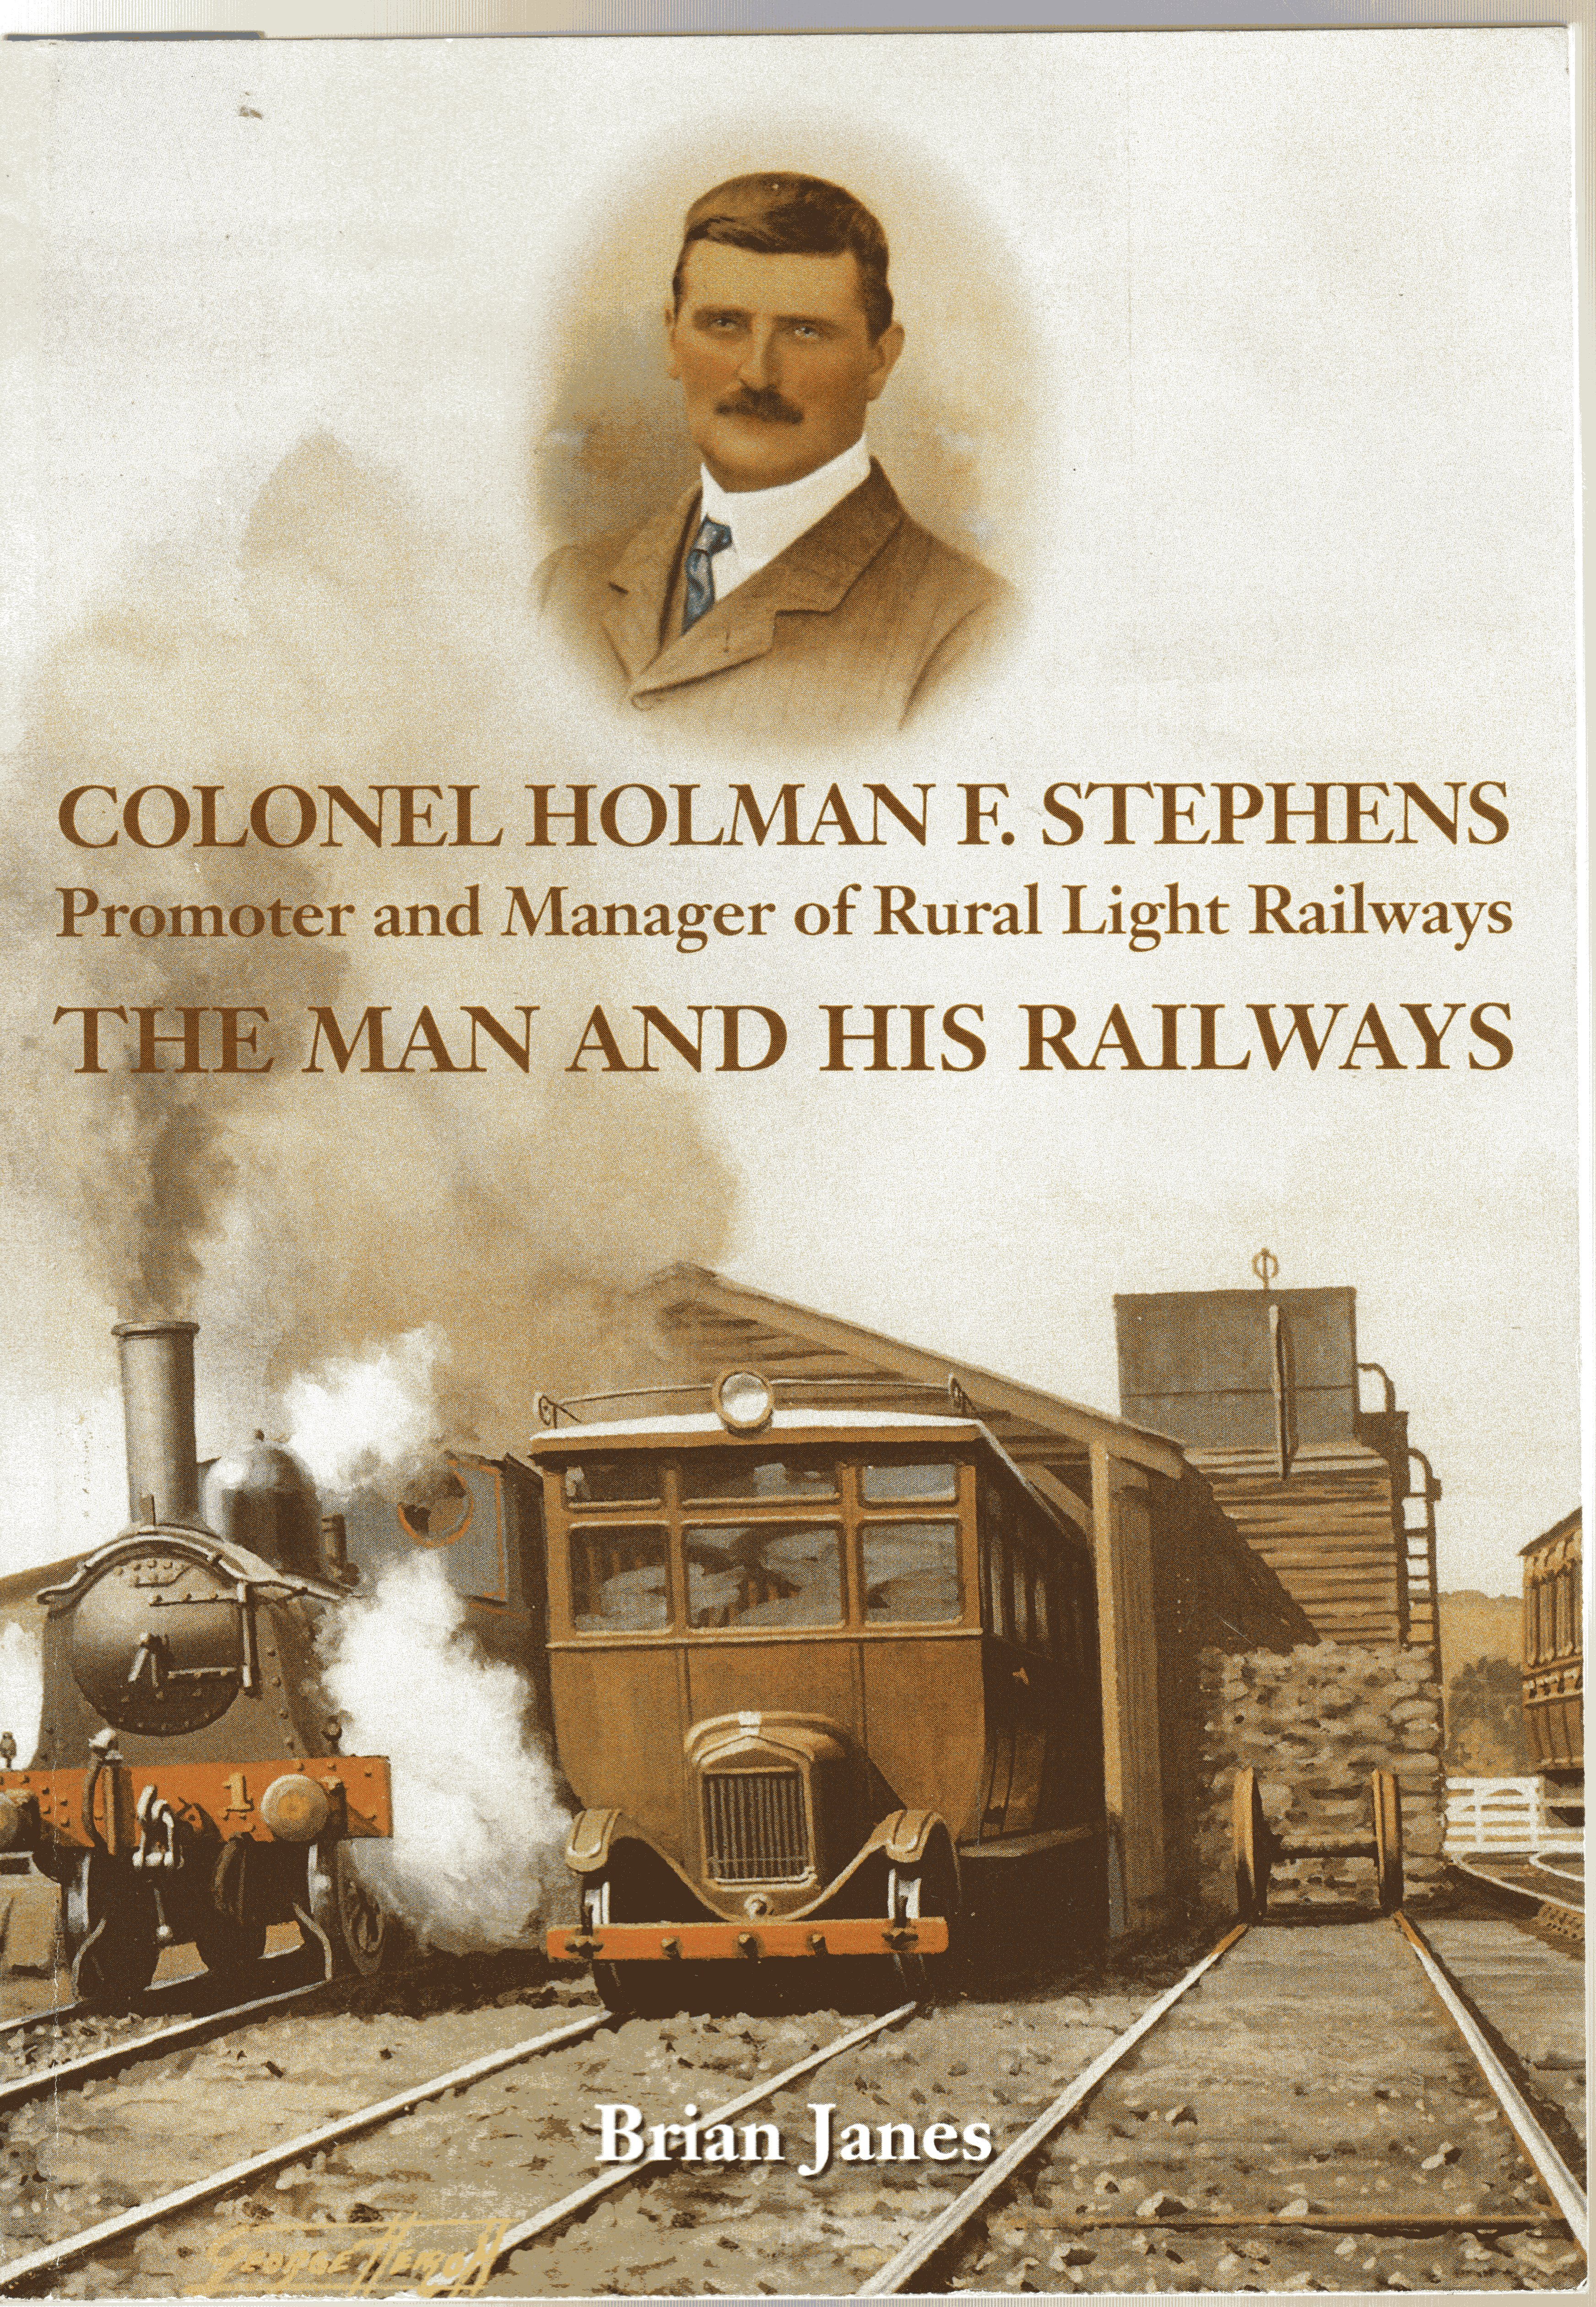 Image for Colonel Holman F. Stephens : Promoter and Manager of Rural Light Railways - the Man and His Railways